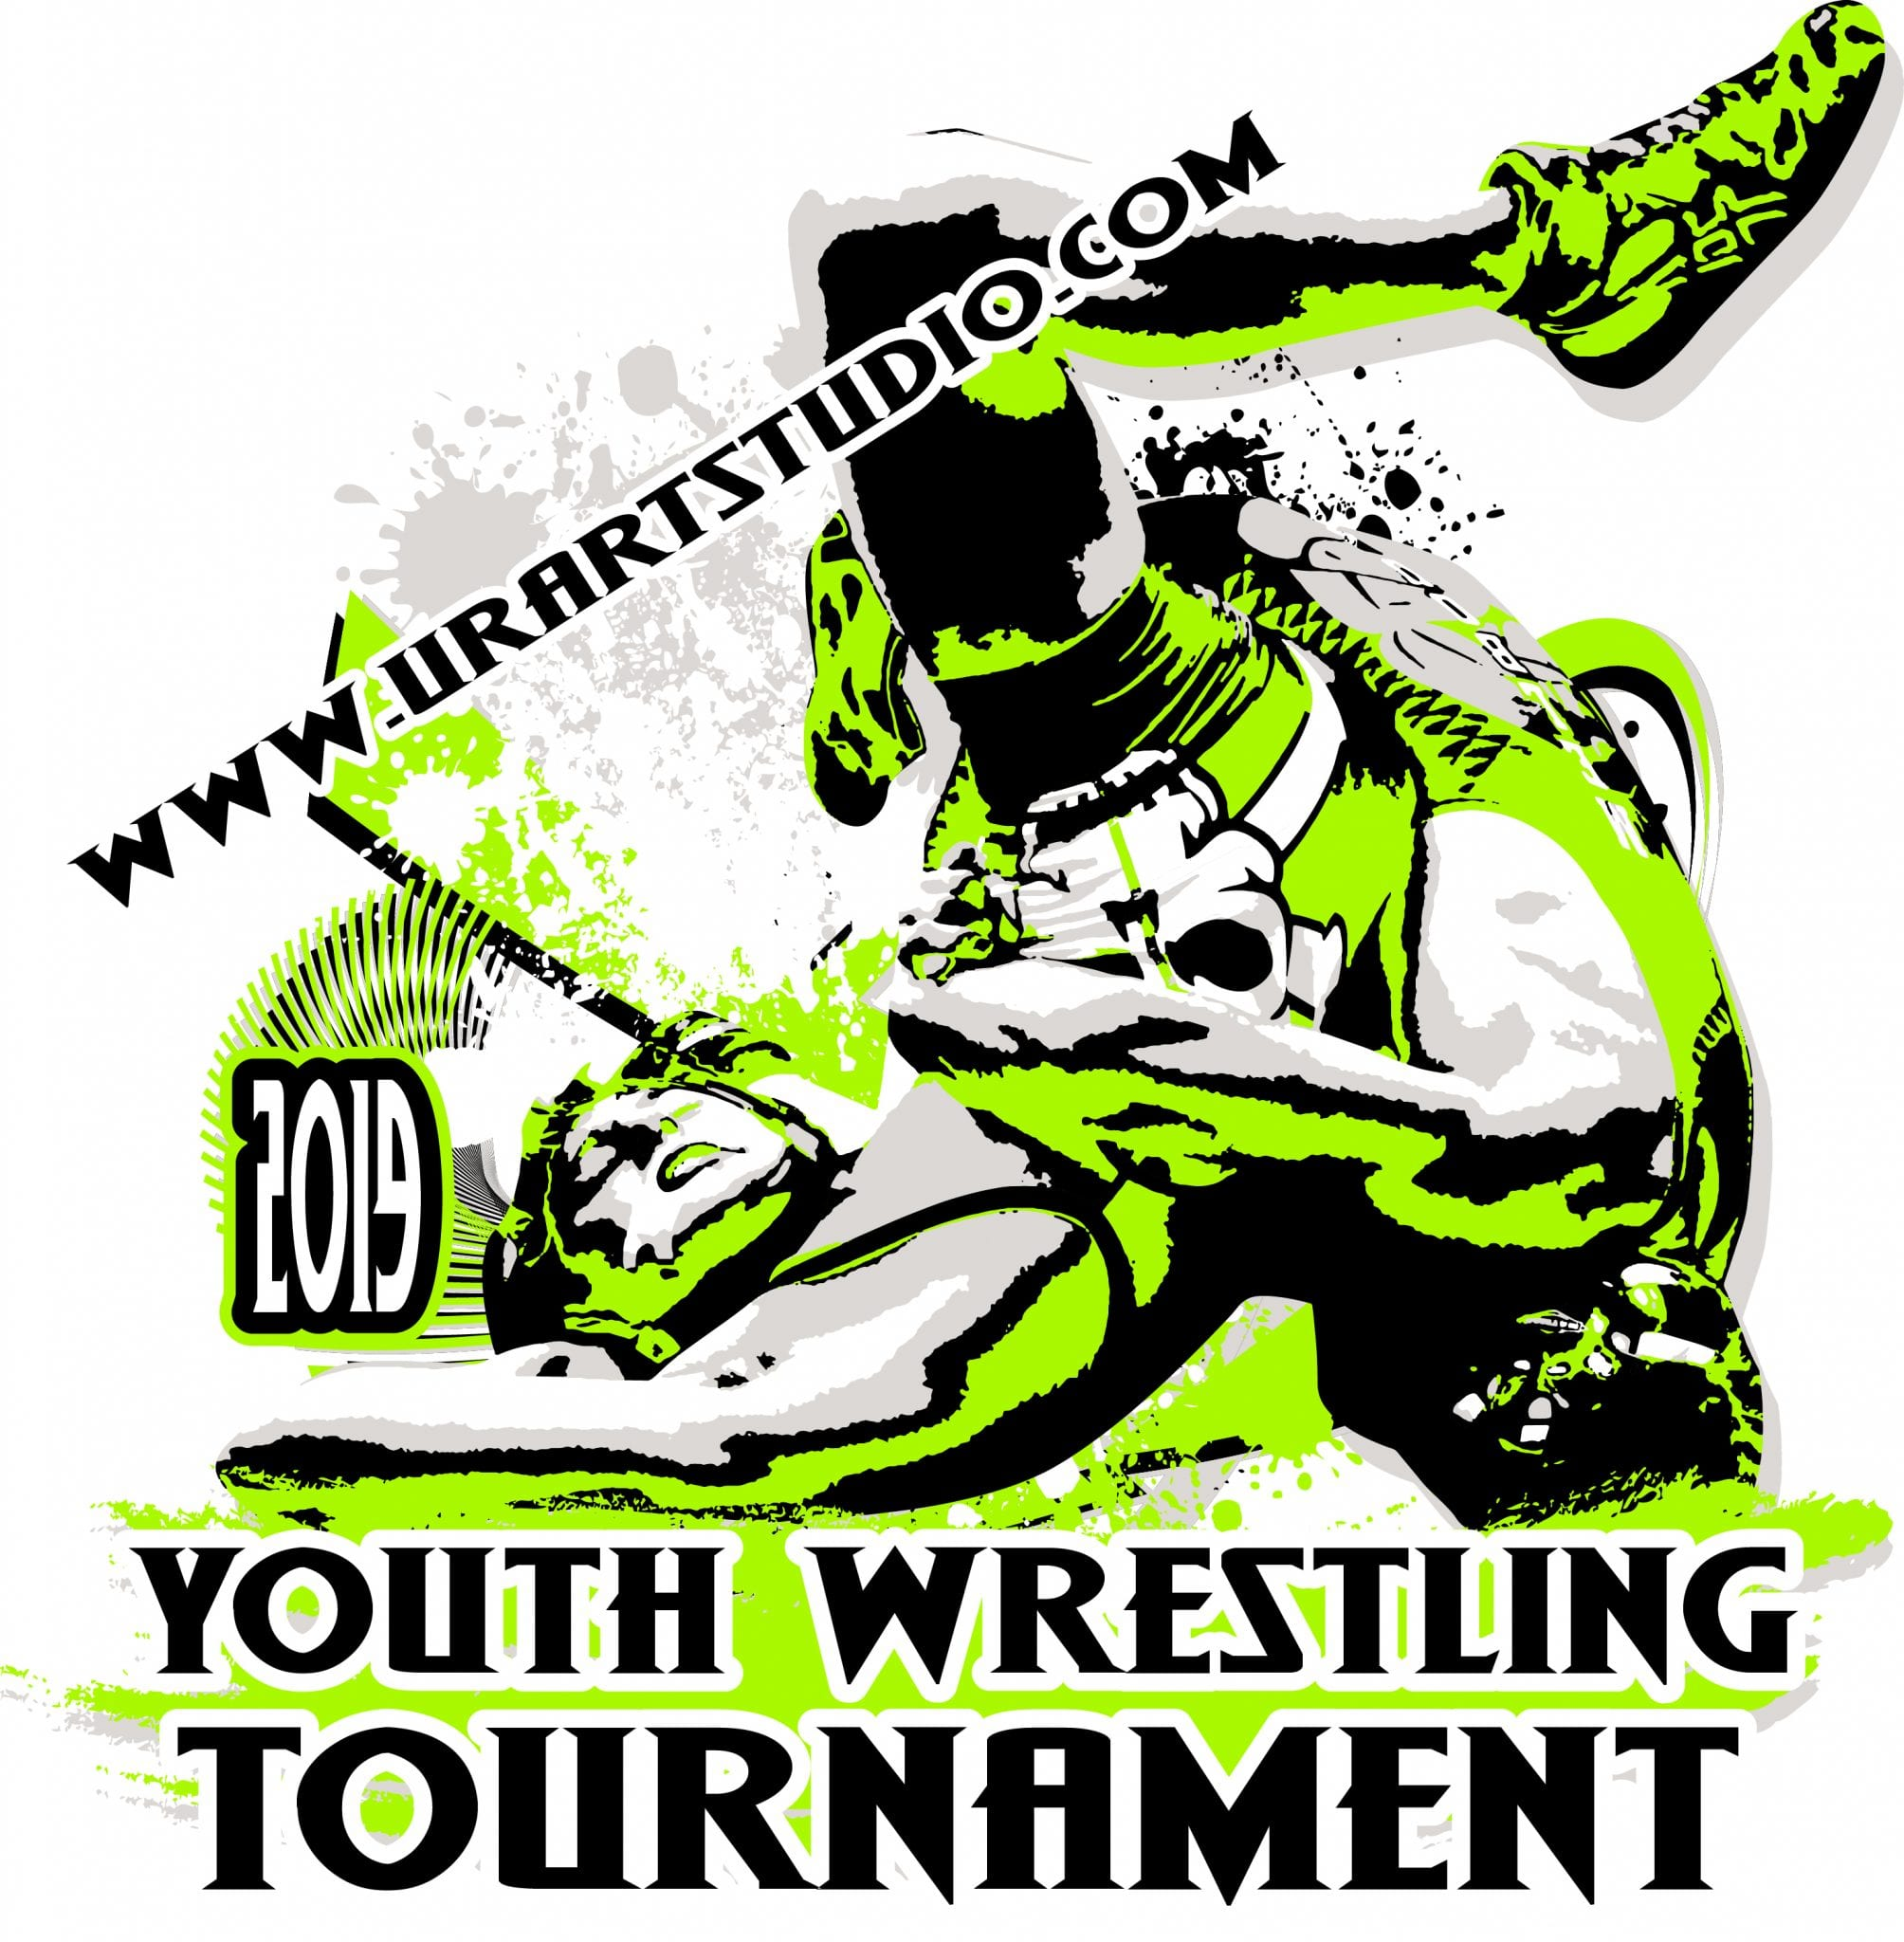 Youth Wrestling Tournament 2019 T Shirt Vector Logo Design For Print